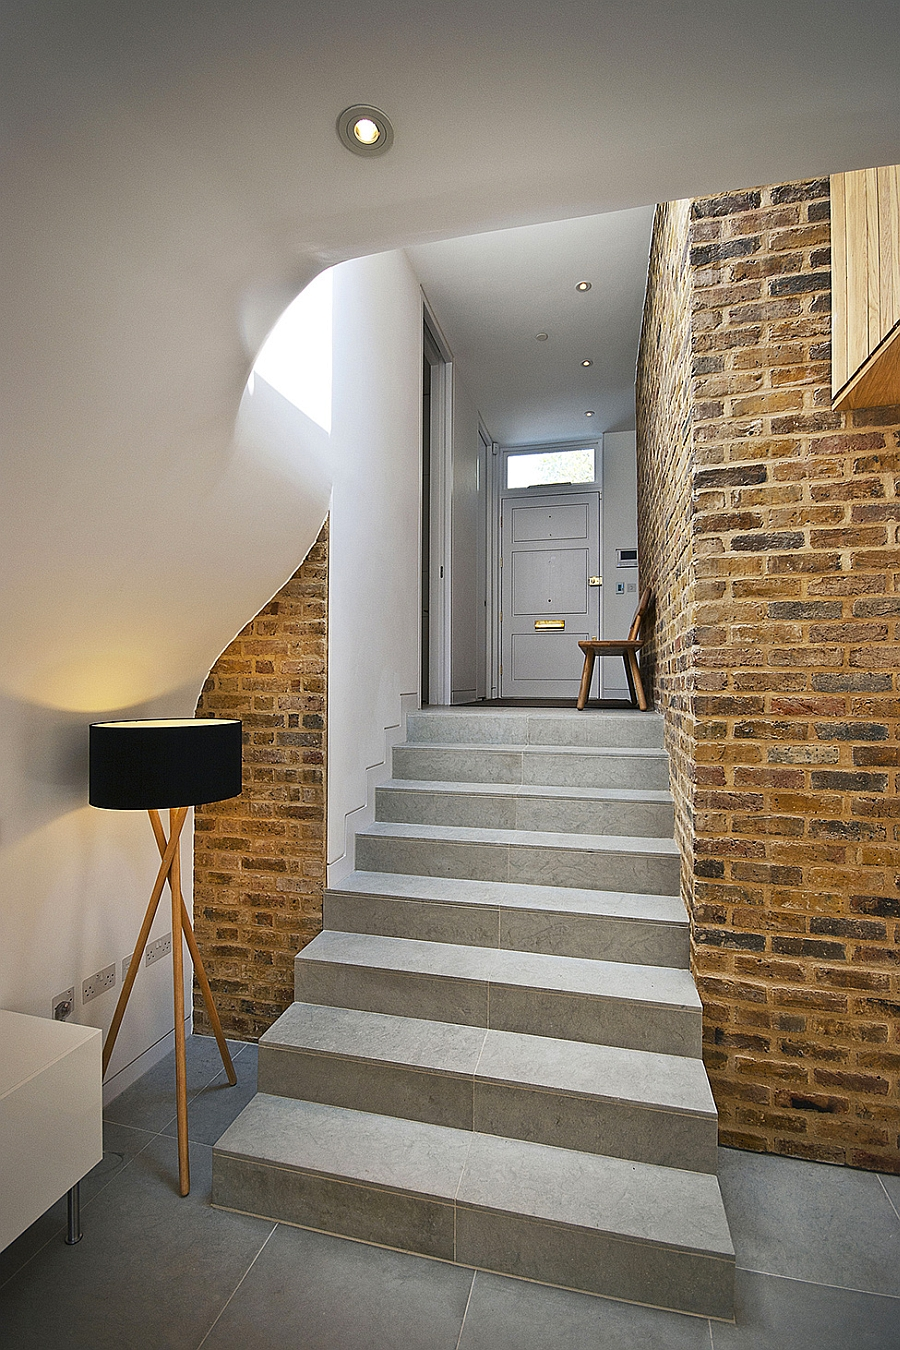 Exposed brick walls of the classic British residence